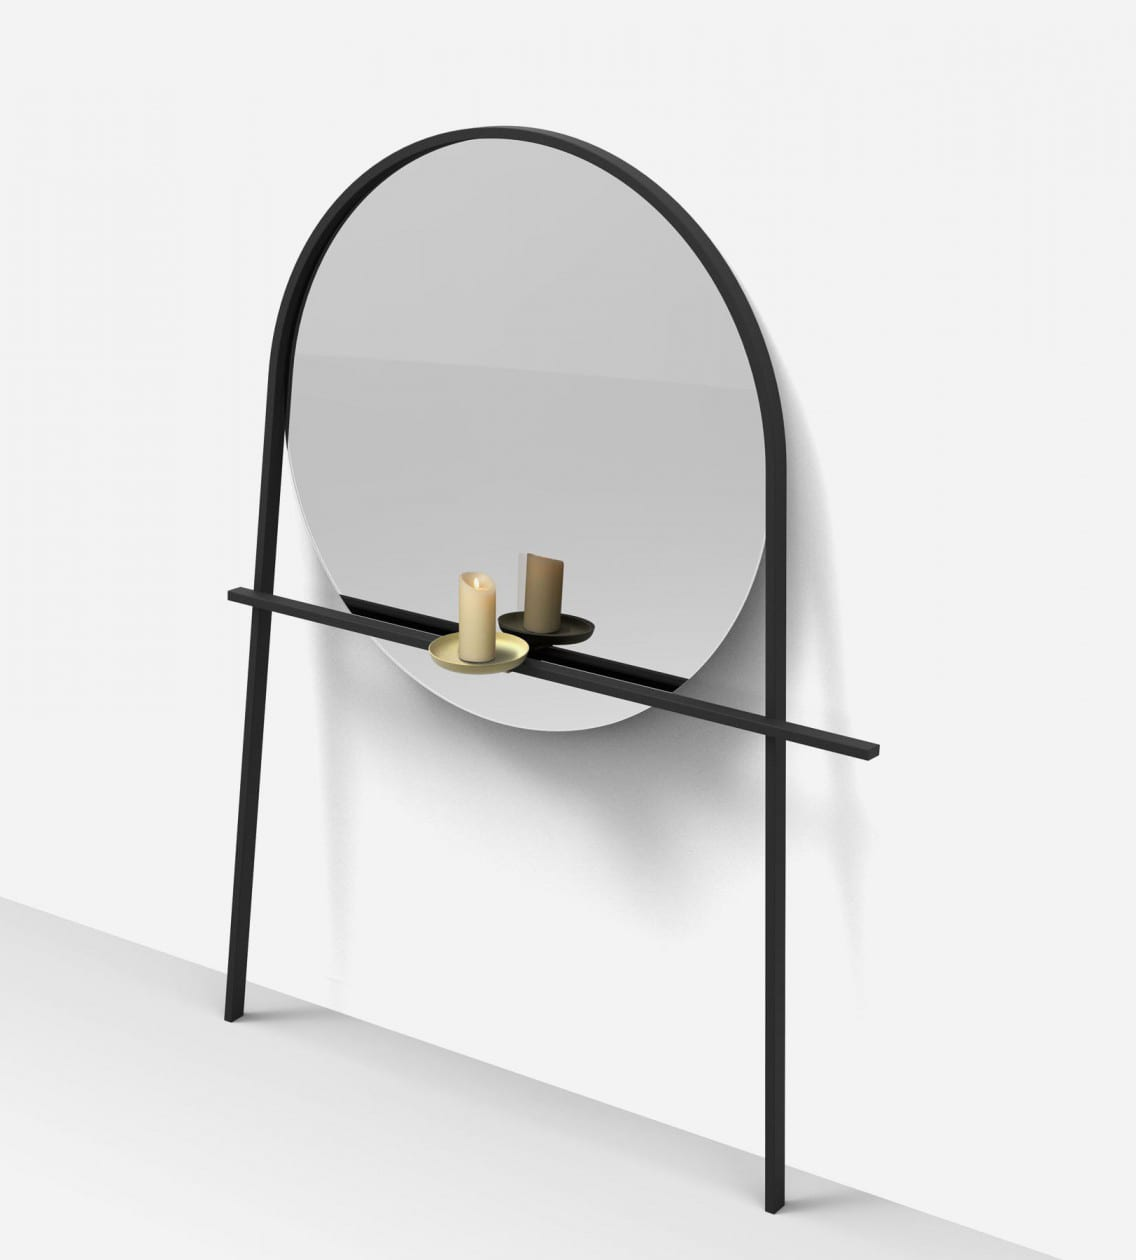 Geoffrey mirror by alain gilles for ligne roset at maison objet 2018 yellowtrace